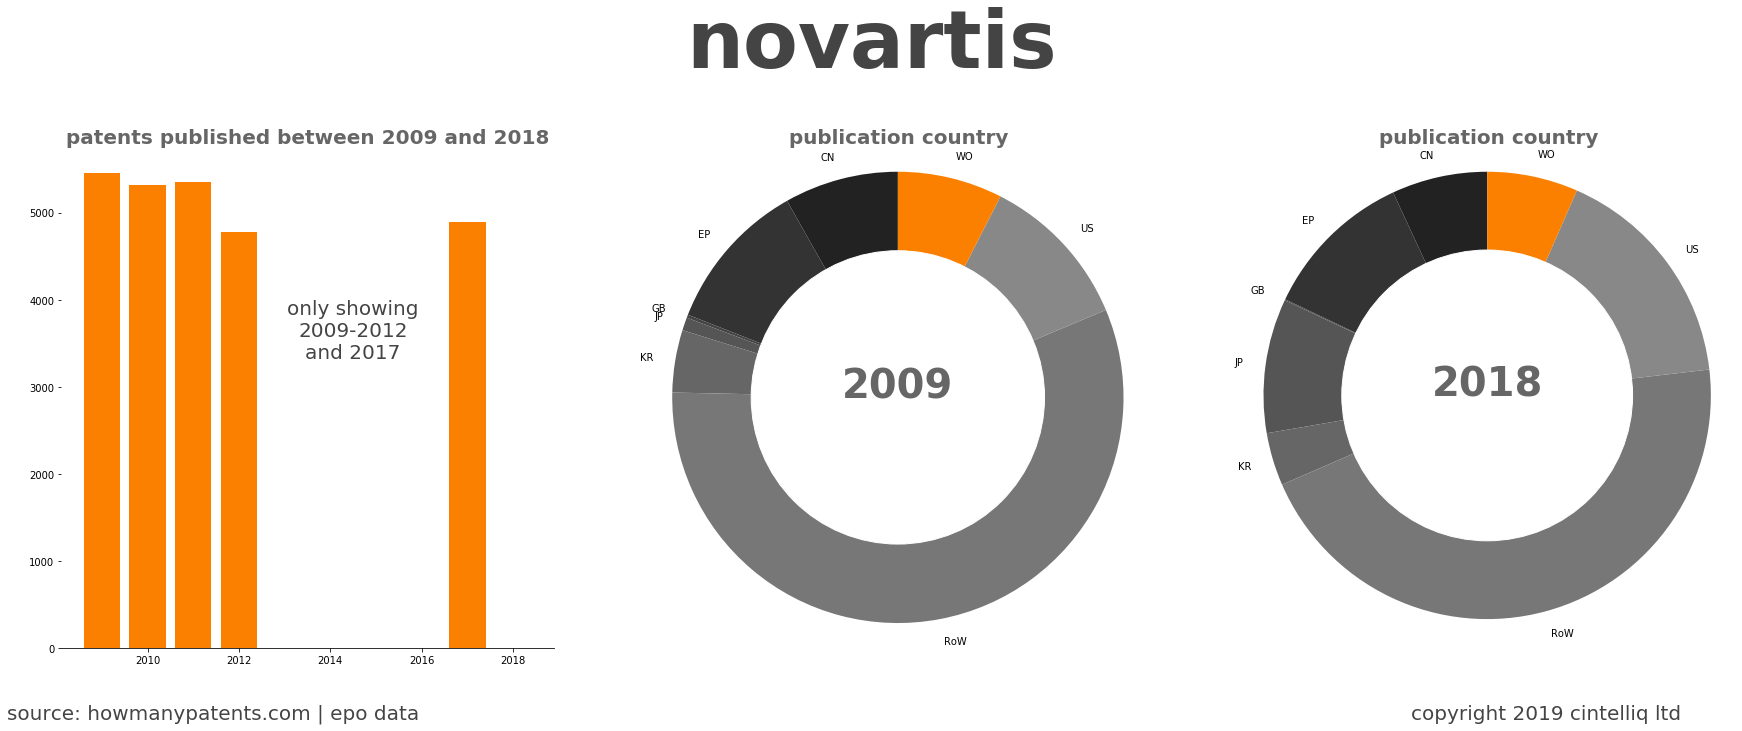 summary of patents for Novartis